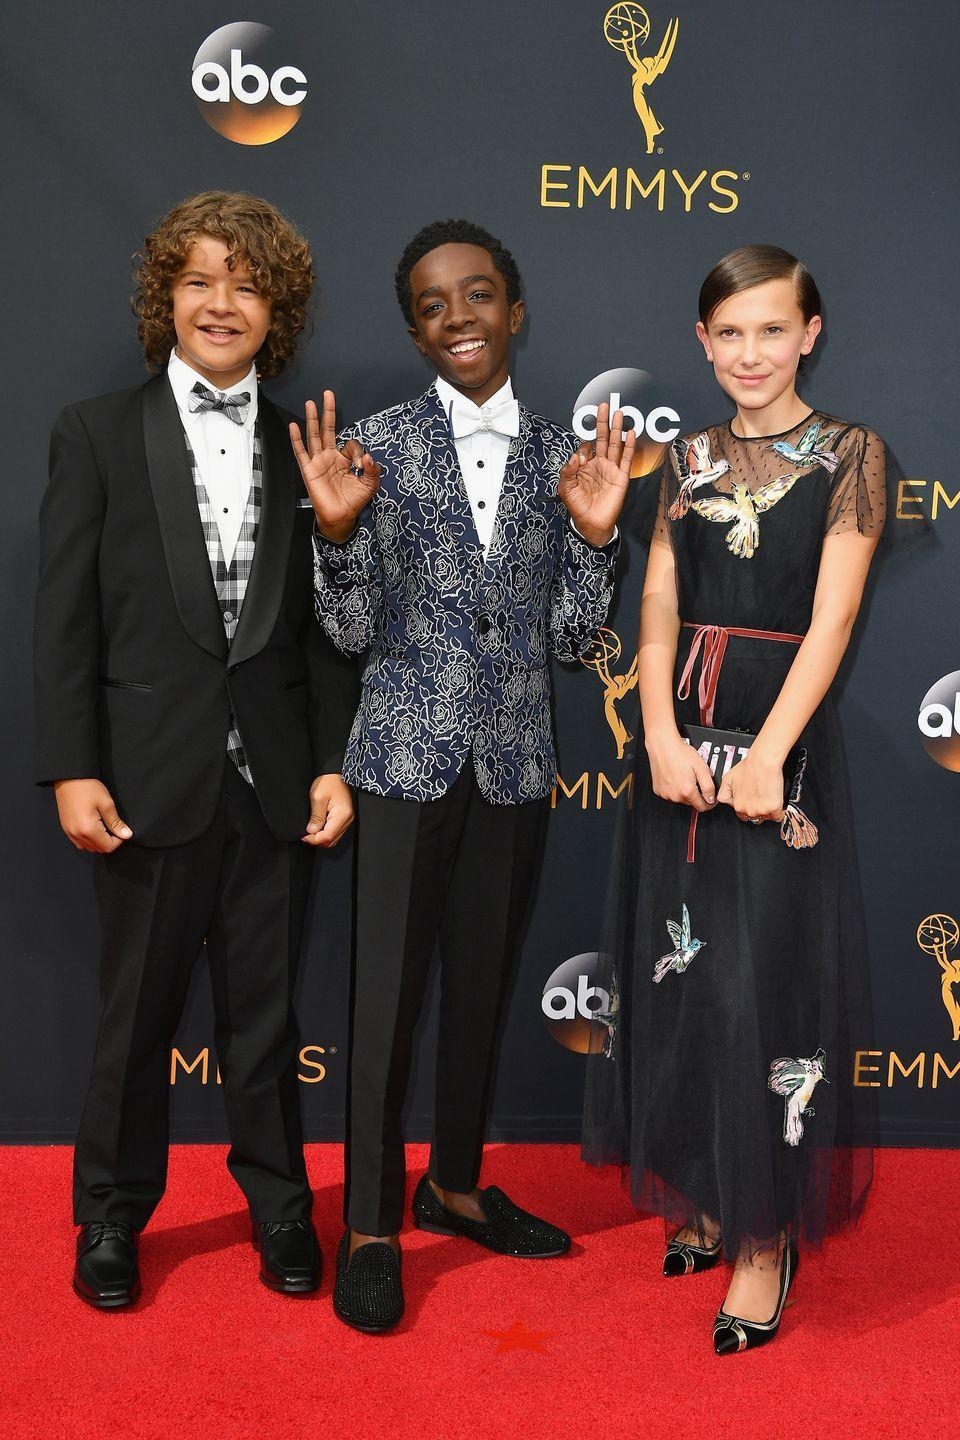 <p>For her first Emmy Awards in 2016, Millie Bobby Brown walked the red carpet with her<em> Stranger Things</em> co-stars in a tulle gown with bird appliqués. </p>